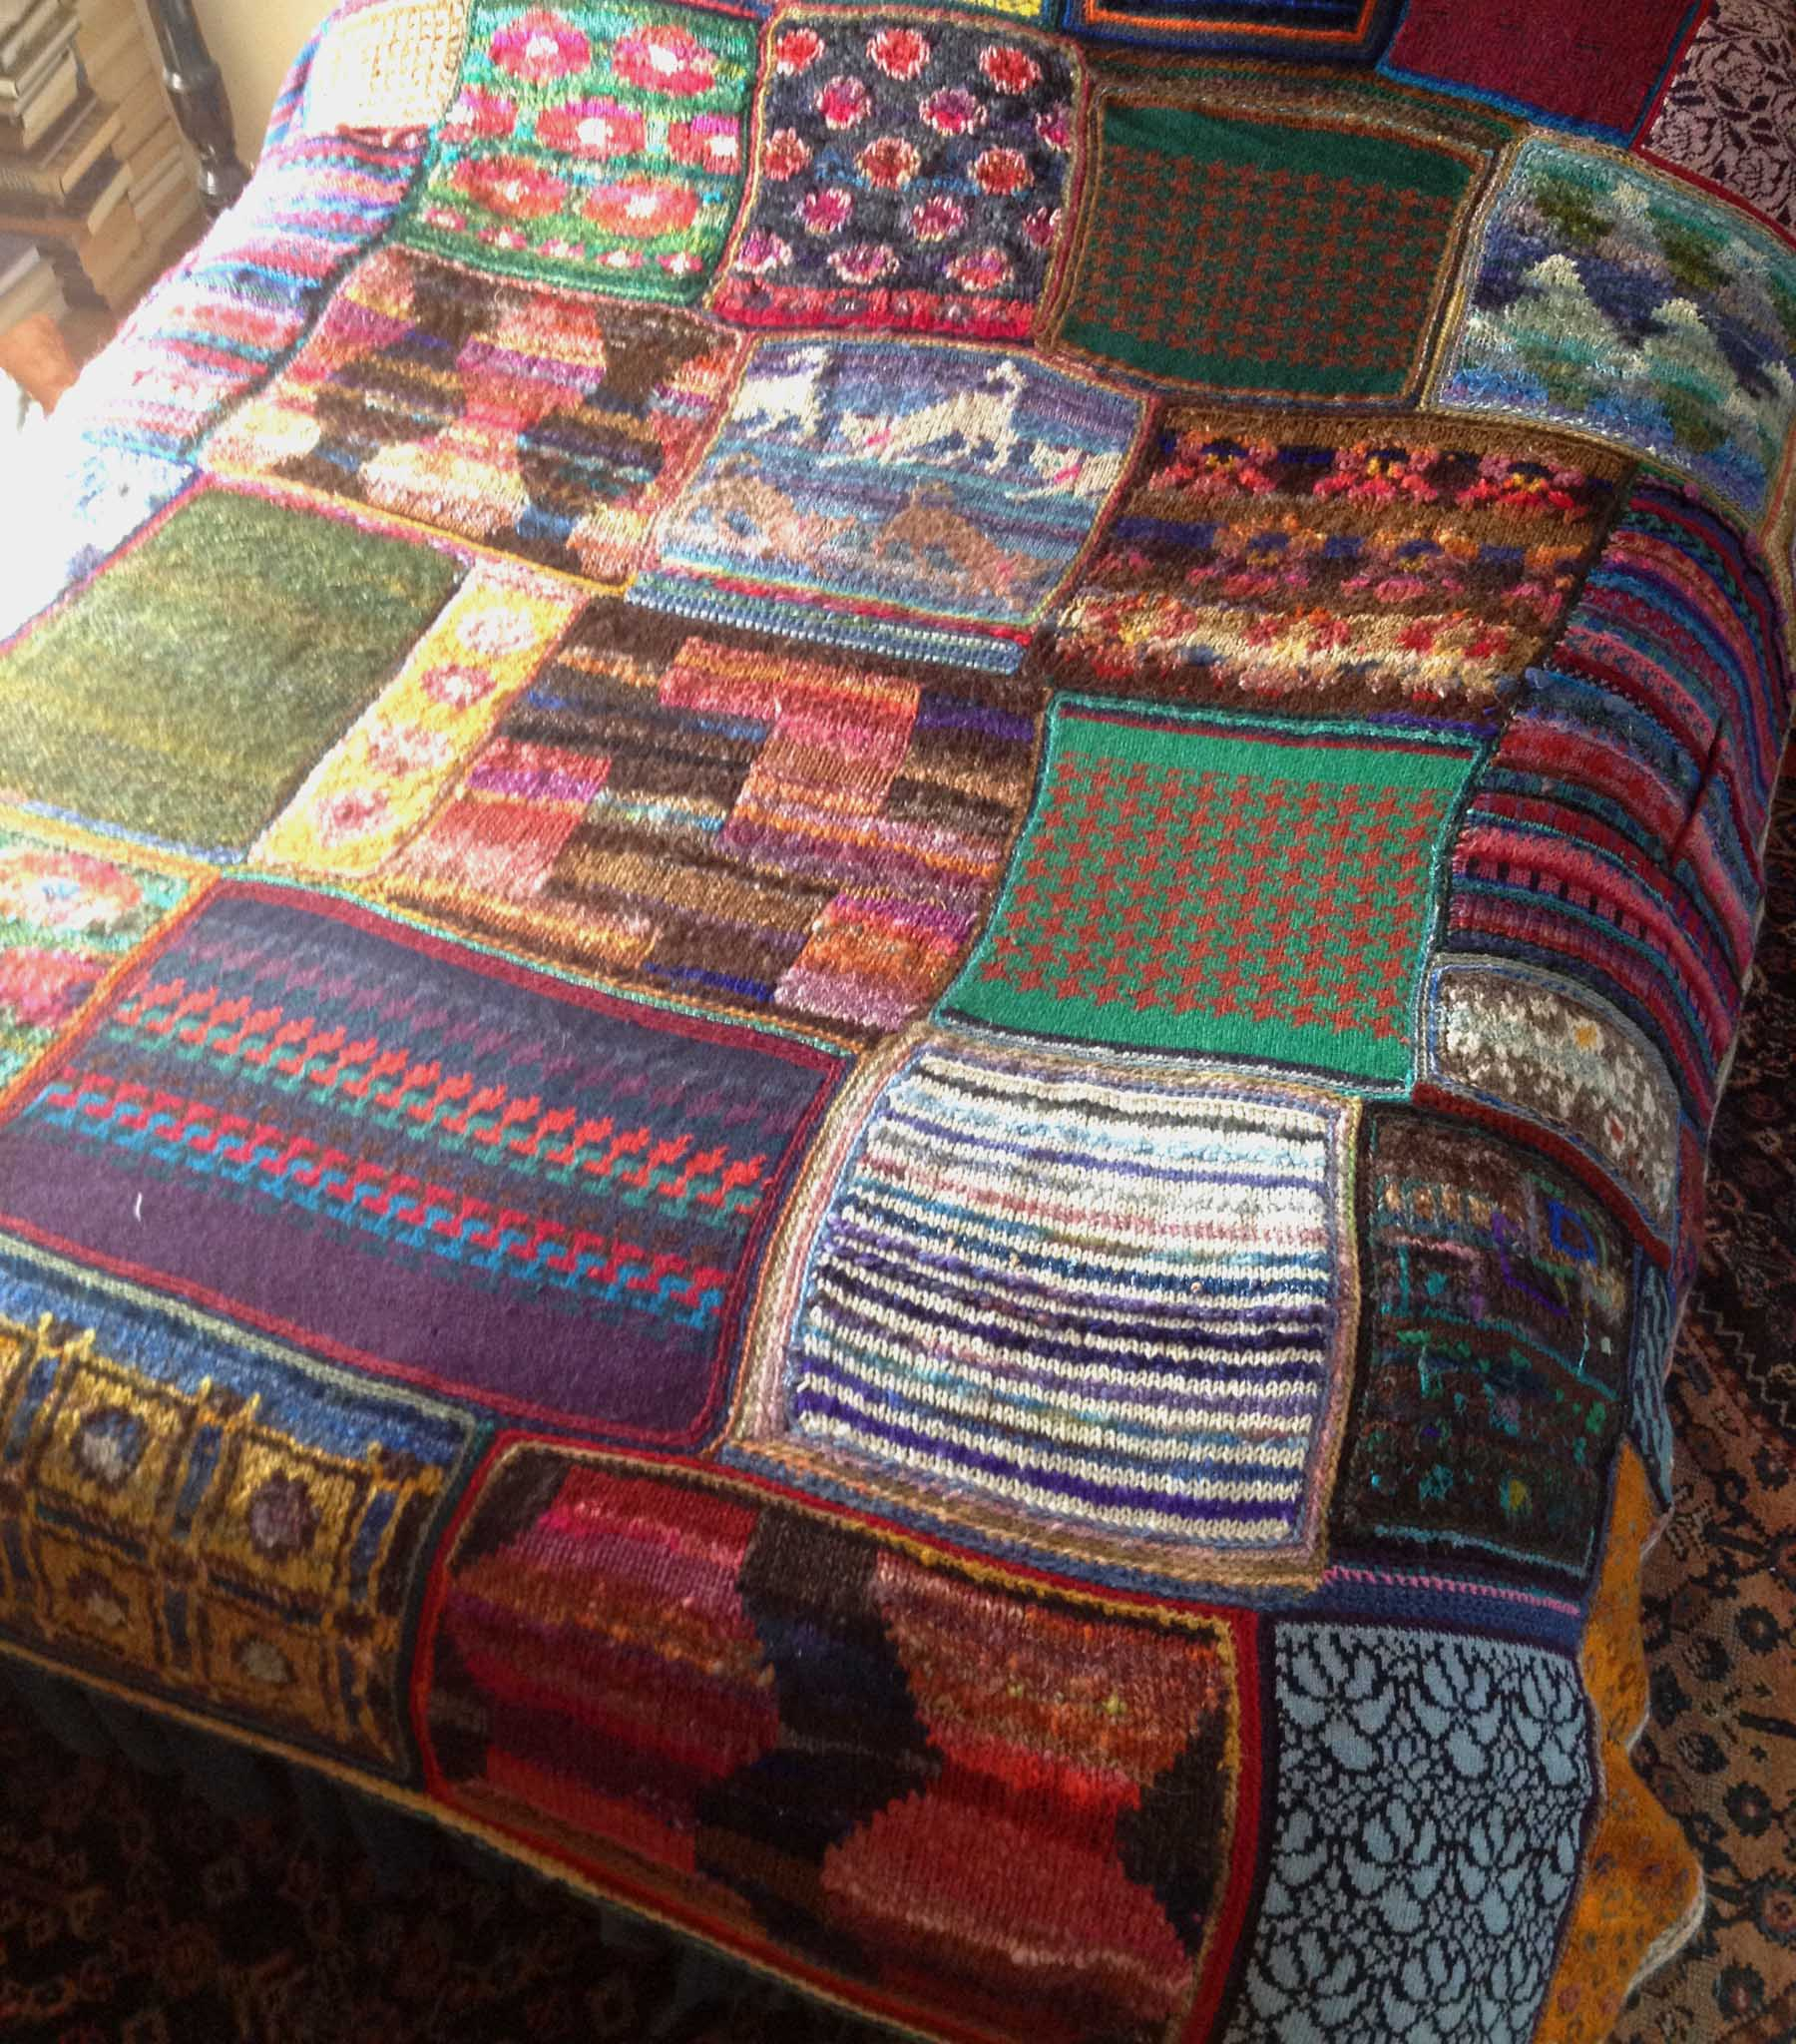 Free Knitting Pattern For Patchwork Quilt : Image Gallery knitting a patchwork blanket